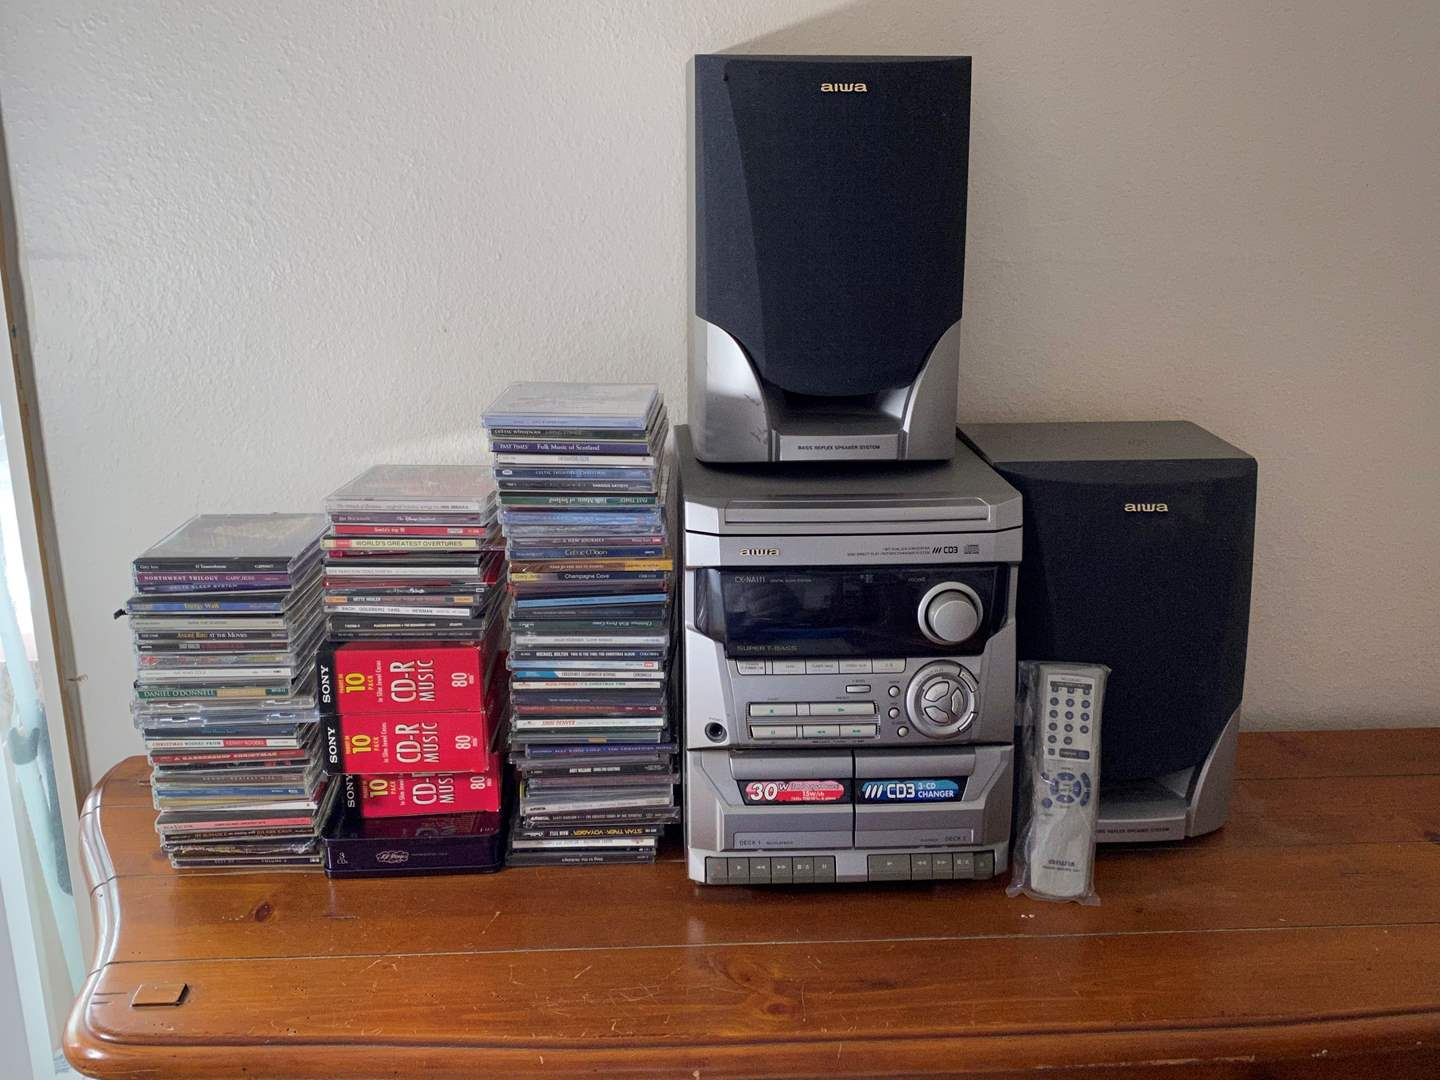 Lot# 77- Aiwa Stereo System With 3-CD Changer & Speakers, Stacks of CDs-Lots of Celtic & Christmas Titles   (main image)